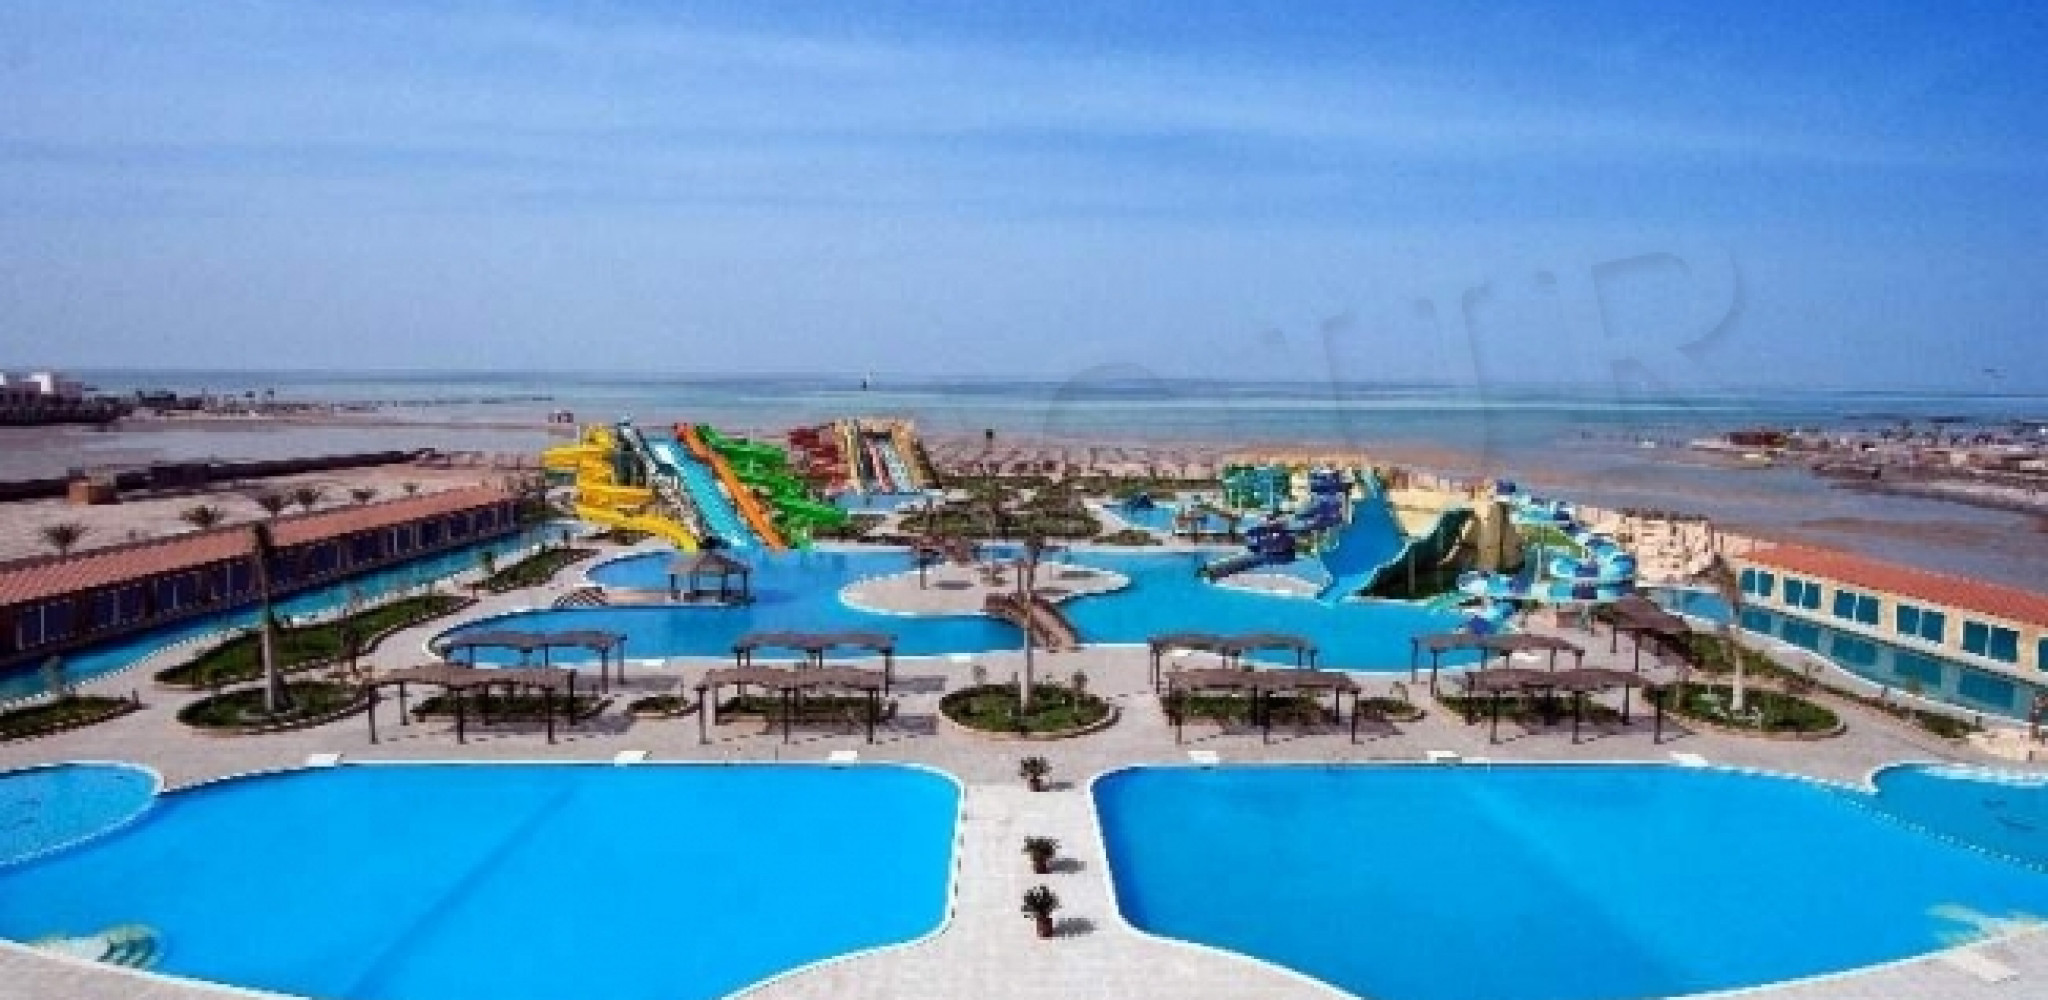 Hawaii Caesar Palace Hotel & Aquapark (ex.Mirage Aqua Park & Spa) 10 ночей 18.11.18 из Киева